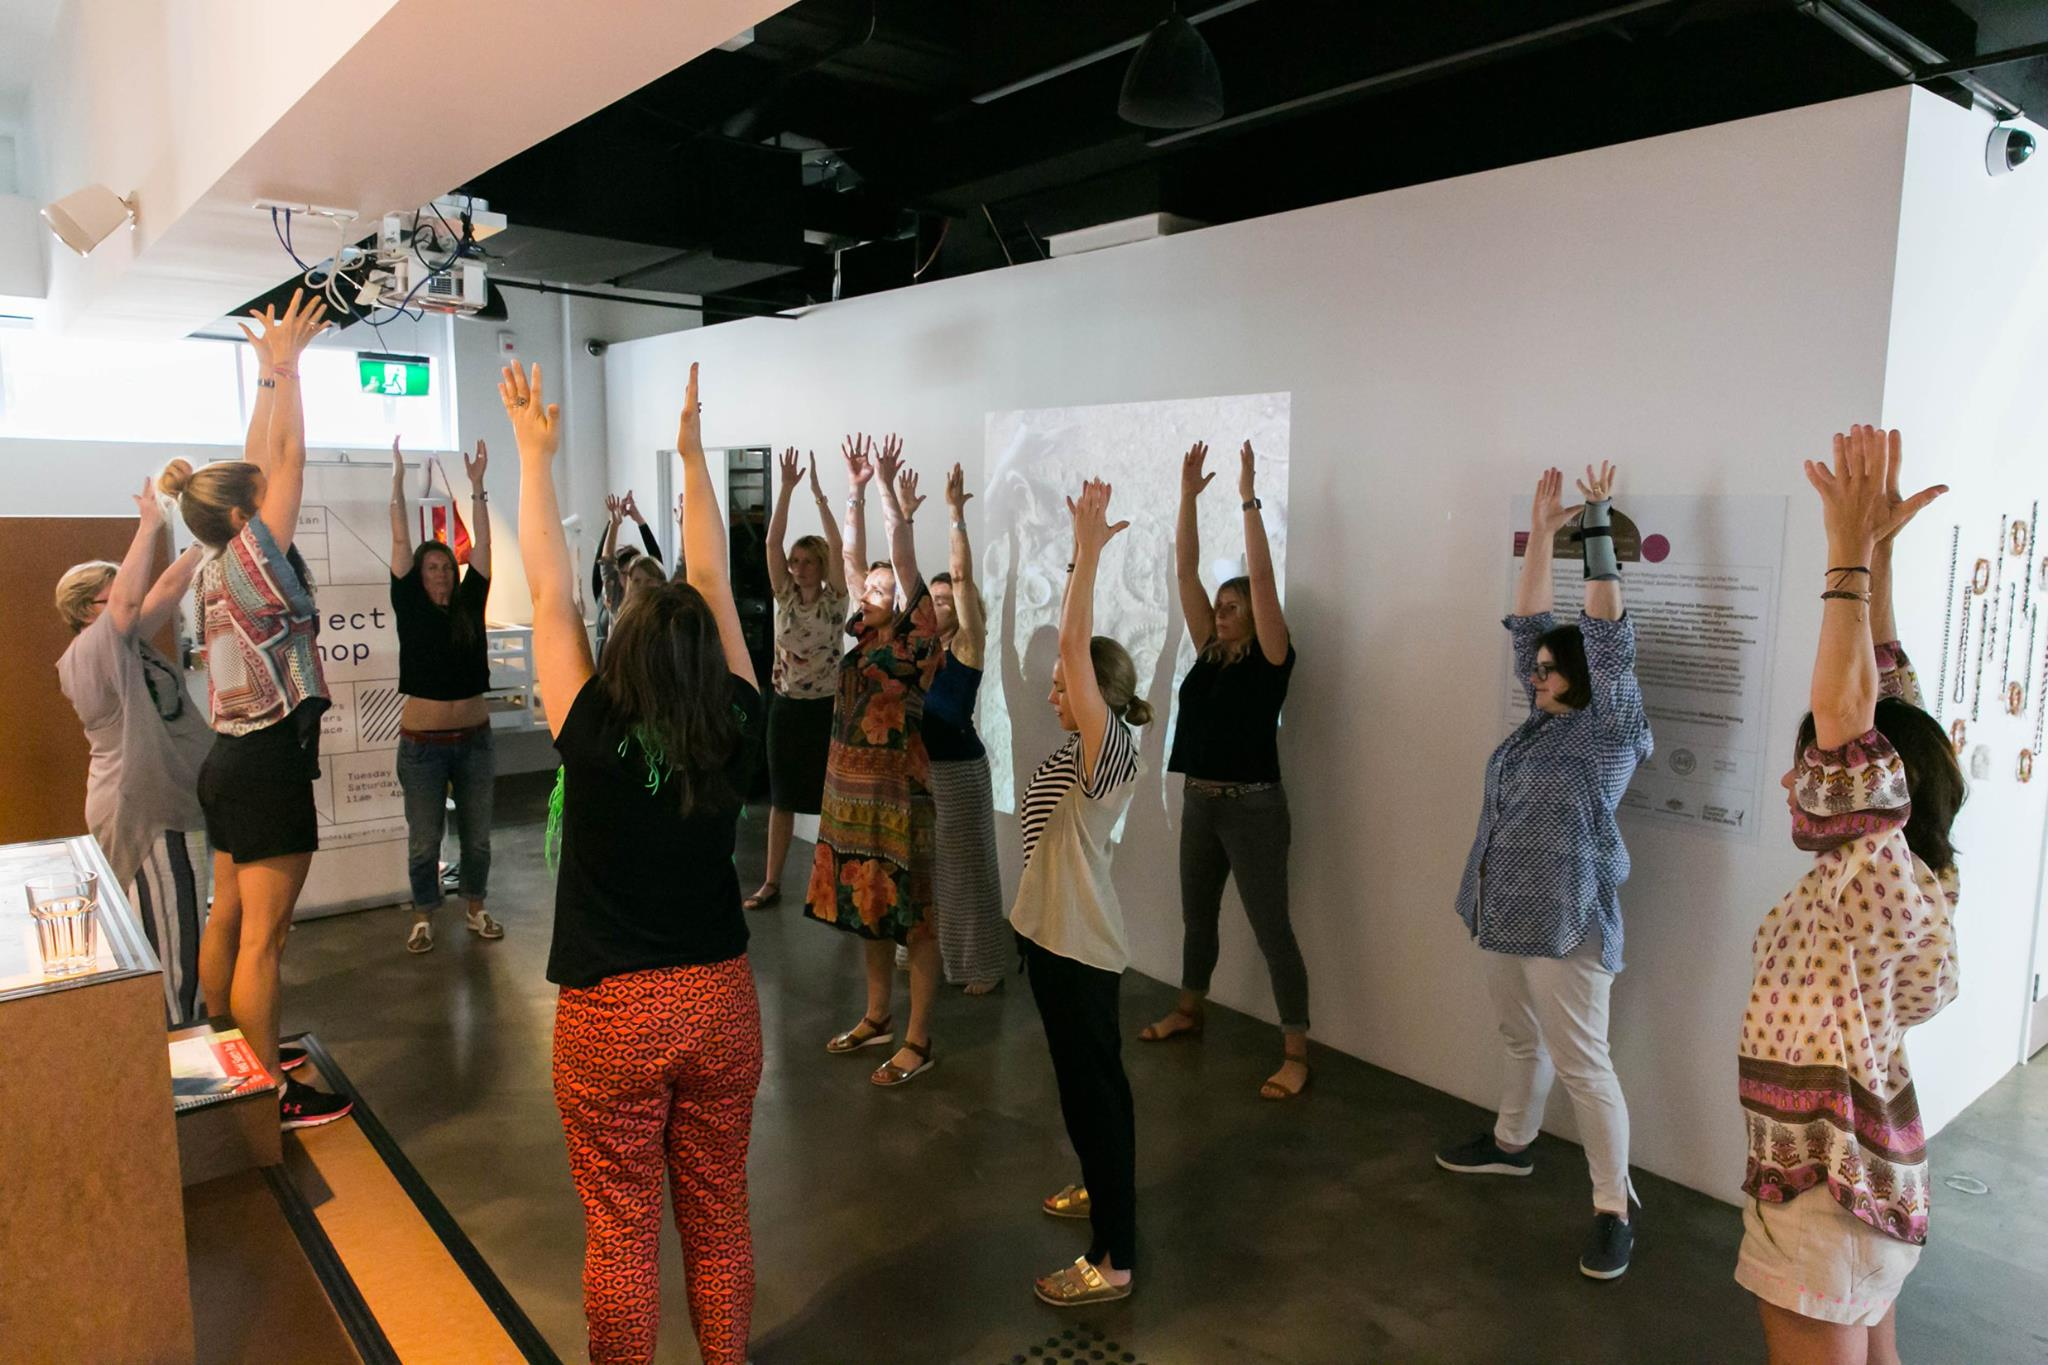 Warm up & breathing exercise with Lizzy Williamson, founder and author of Two Minute Moves, at our Creative Mama Workshop in support of PANDA Awareness Week.